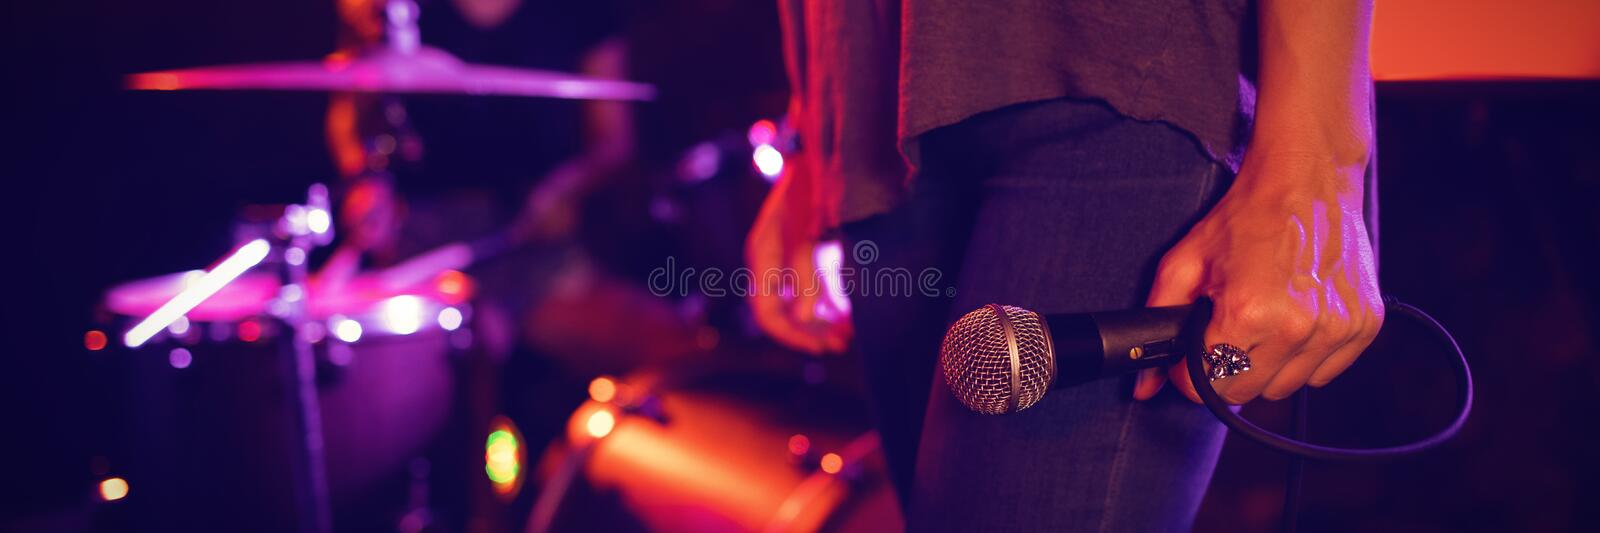 Female singer holding microphone with drummer performing in illuminated nightclub royalty free stock photography